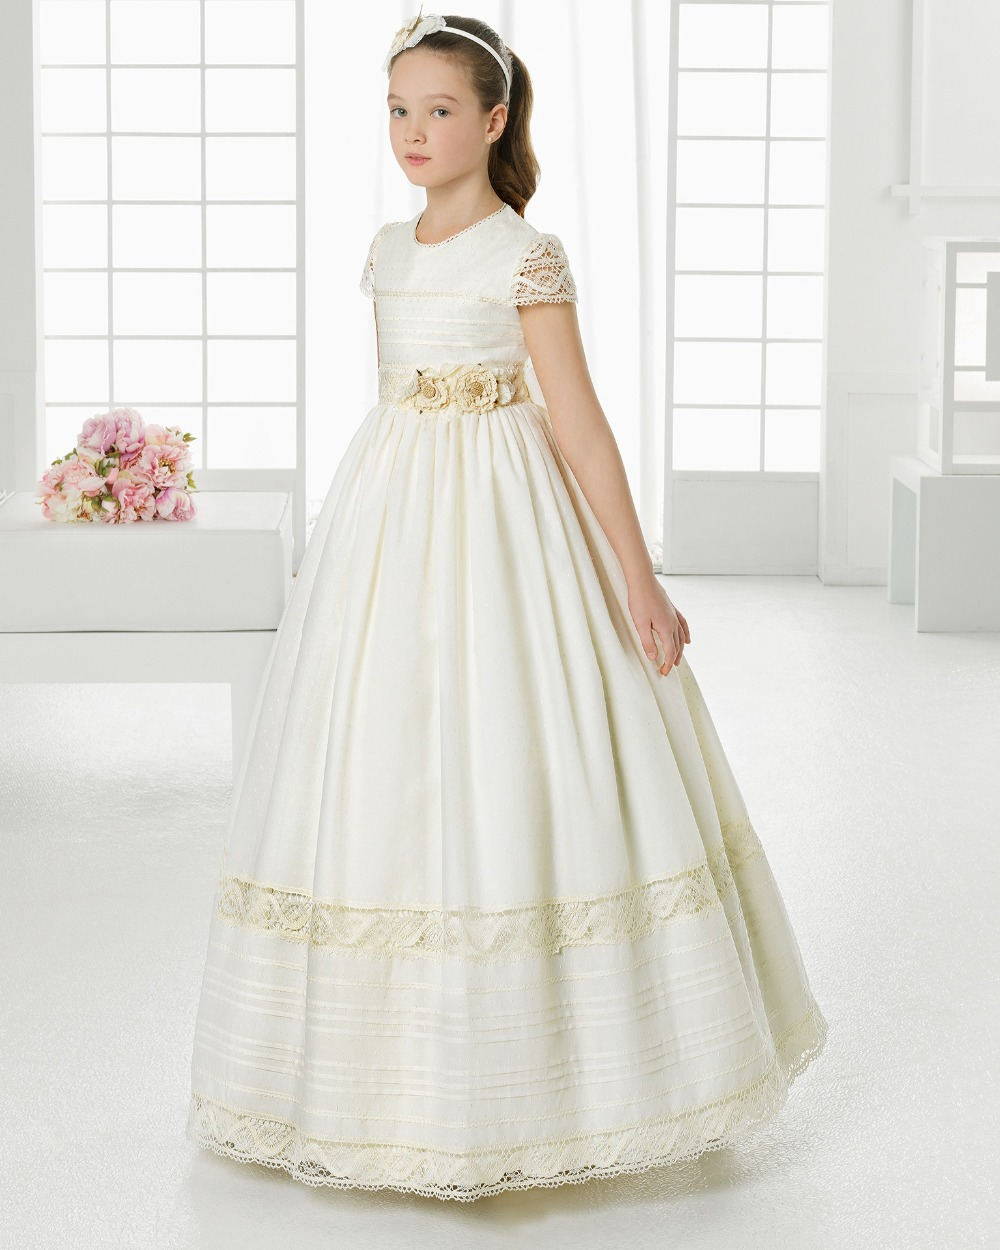 2017 first communion dresses for girls Satin Ball Gown Lace Short ...